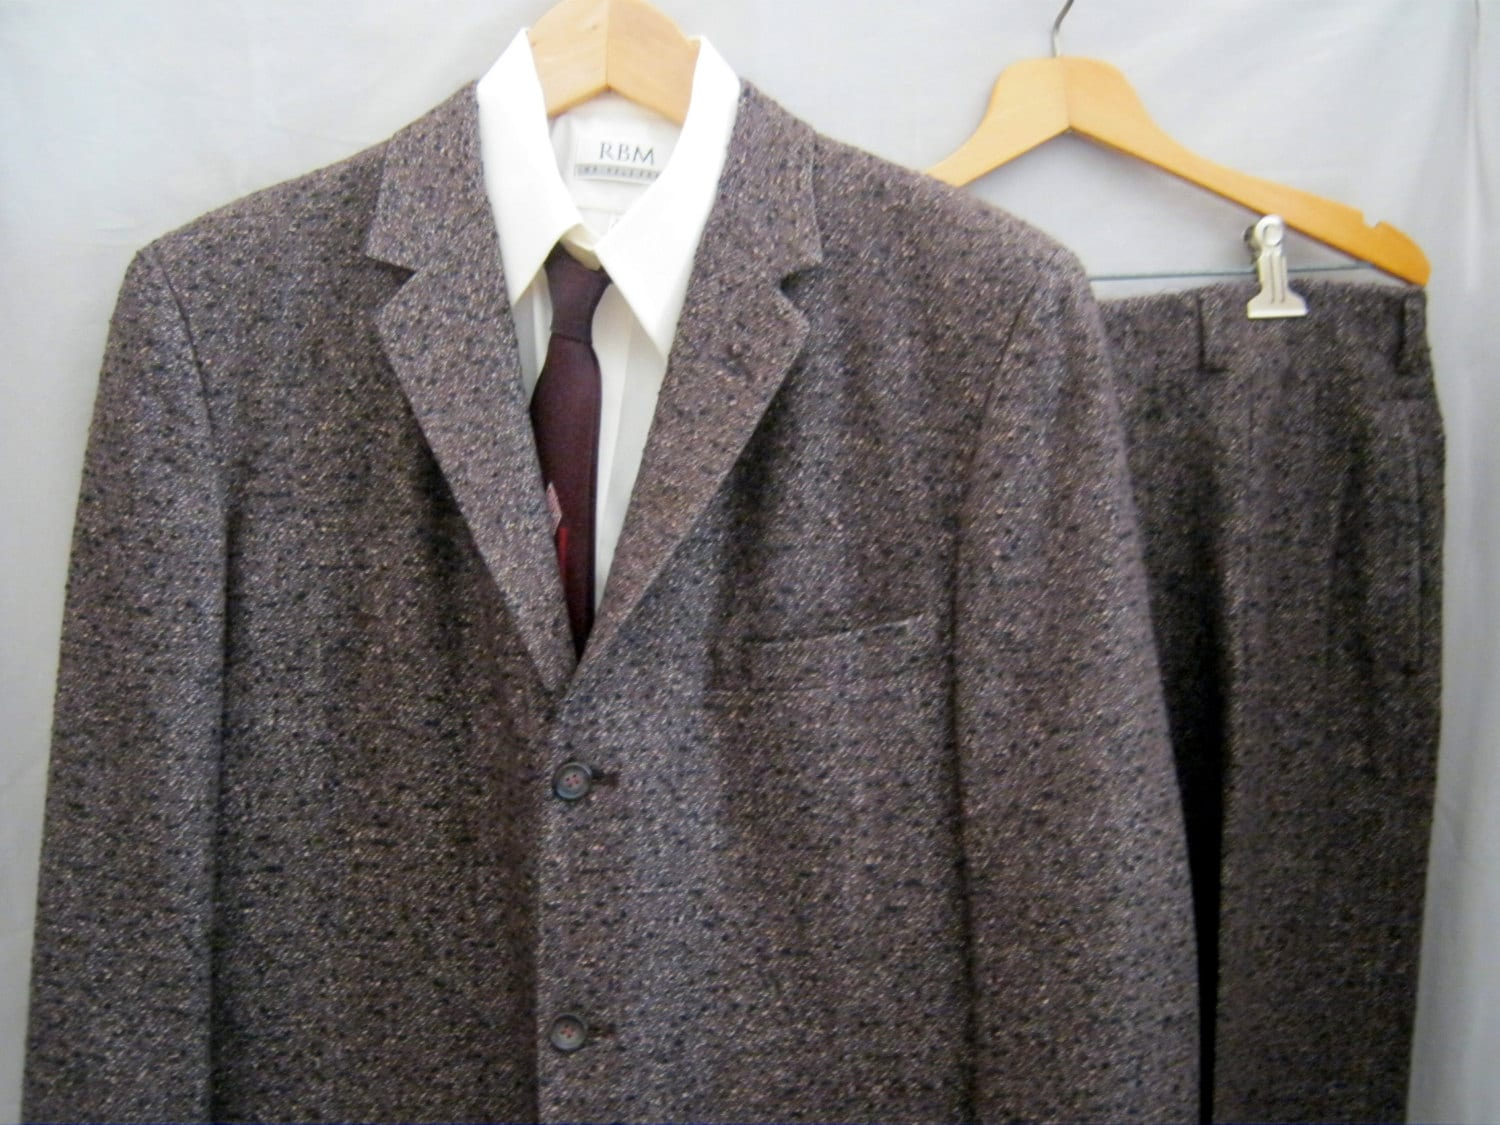 41 Vintage 50s Warren Sewell Black Tweed Suit 3 Button Narrow Lapel Cuffed Pants W 34 L 30 Drop Belt Loops SB4Z7gahl